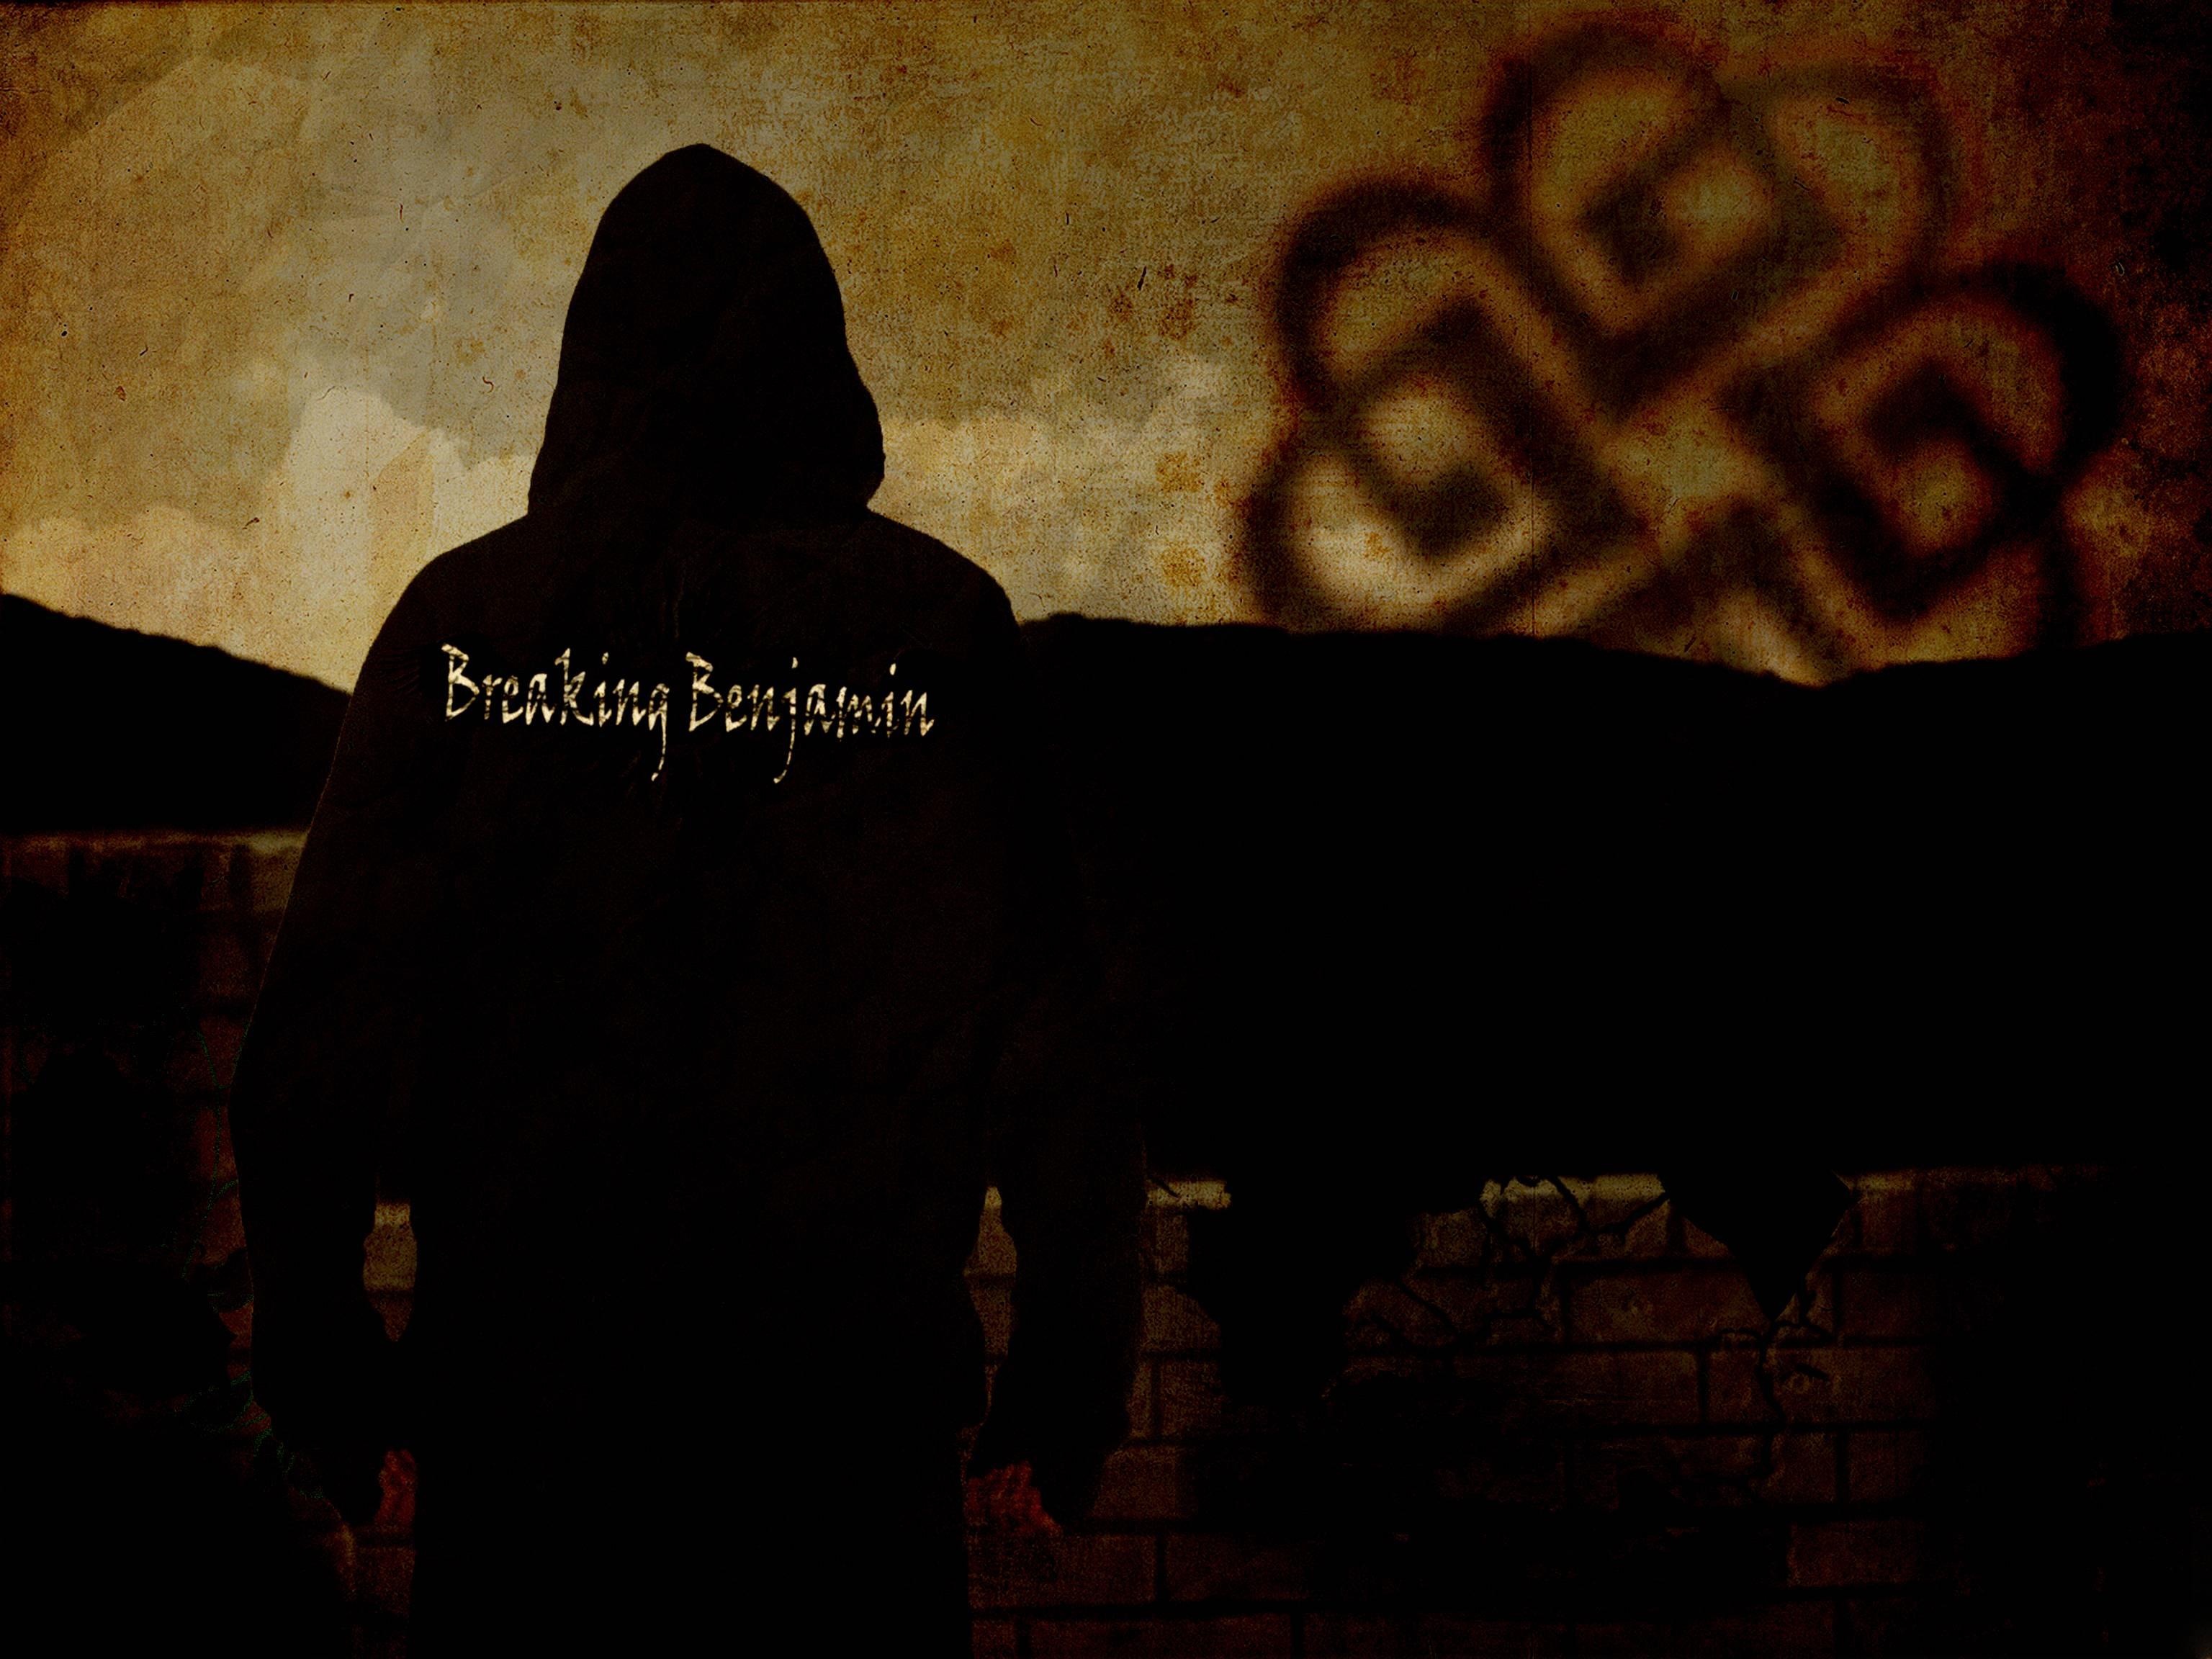 Breaking Benjamin Wallpaper 6   3072 X 2304 stmednet 3072x2304